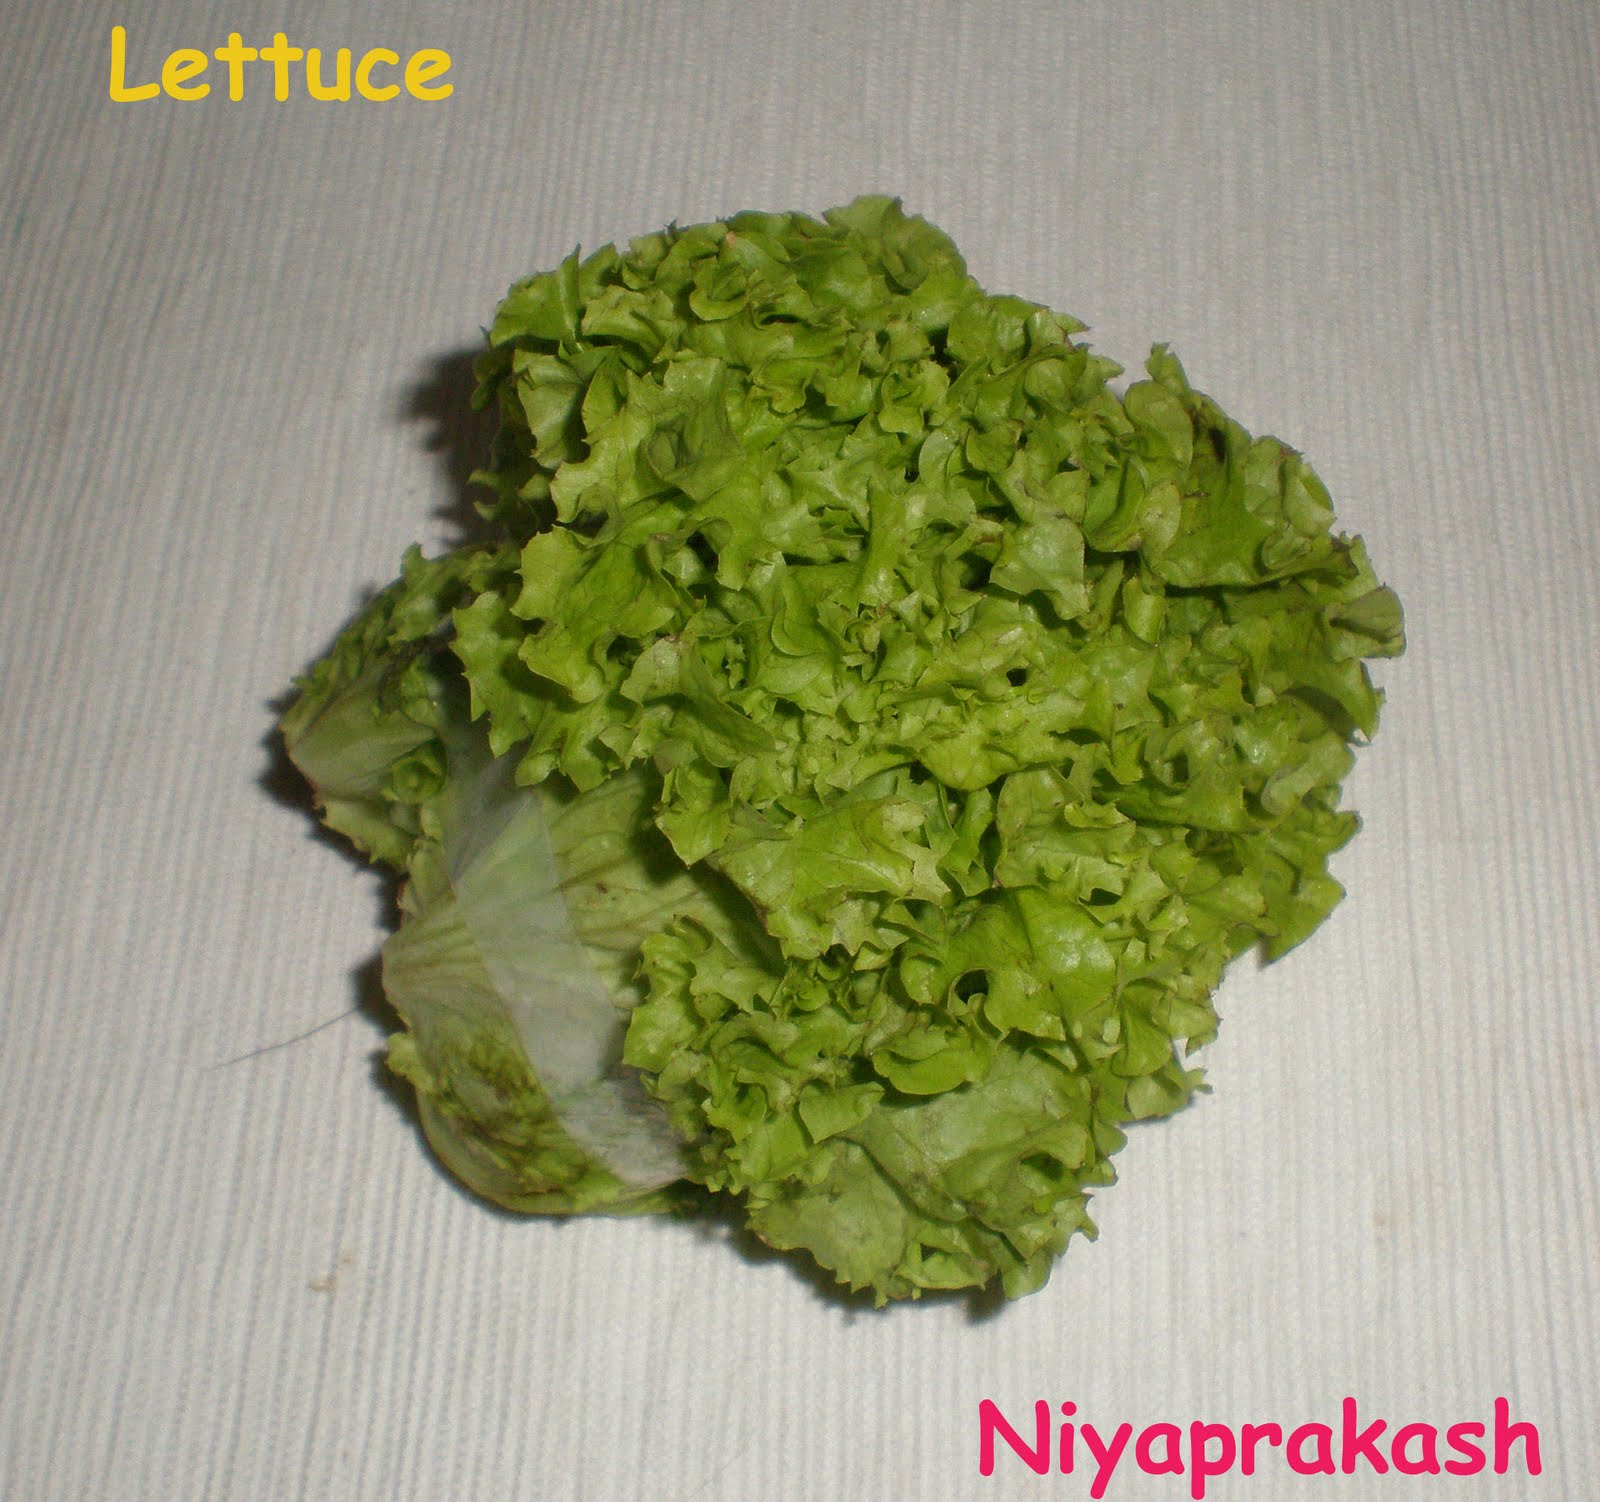 Niya's World: What is the best way to wash lettuce ?